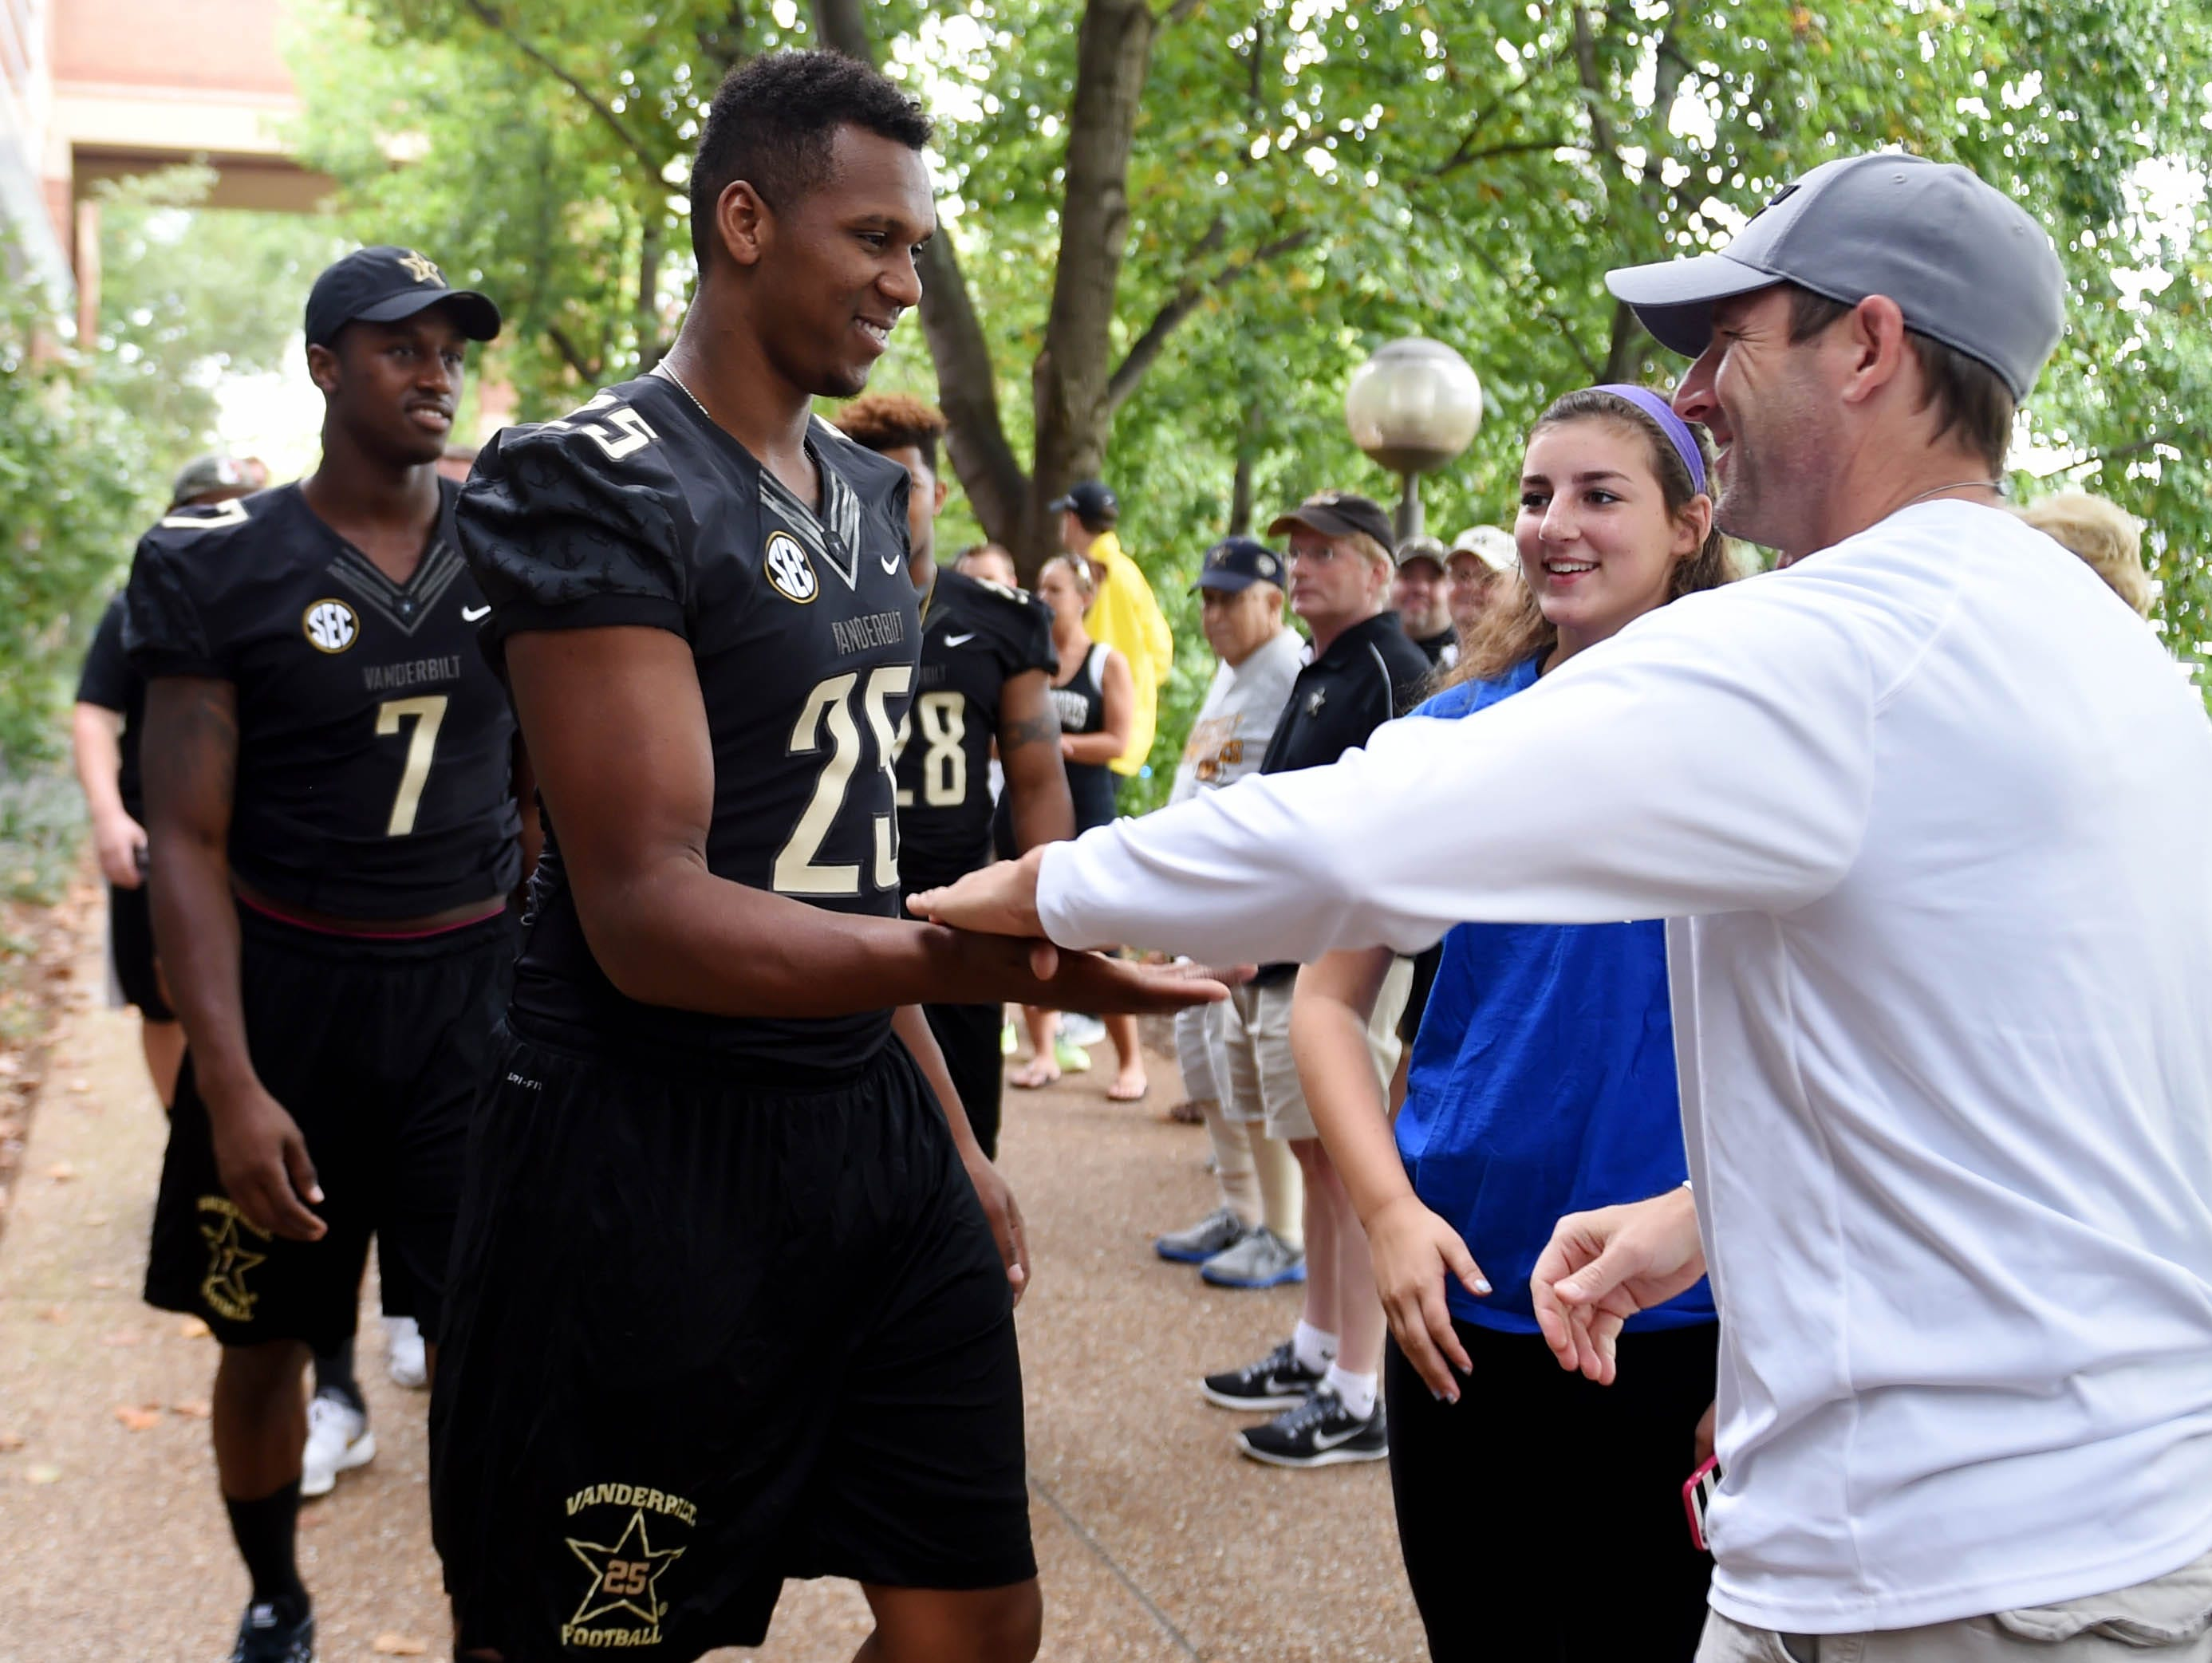 Vanderbilt football players and brothers Emmanuel and Josh Smith are greeted by Steve Rector during Vanderbilt's annual Dore Jam fan event on Sunday Aug. 16, 2015. Rector's son Andrew plays football for Vanderbilt.